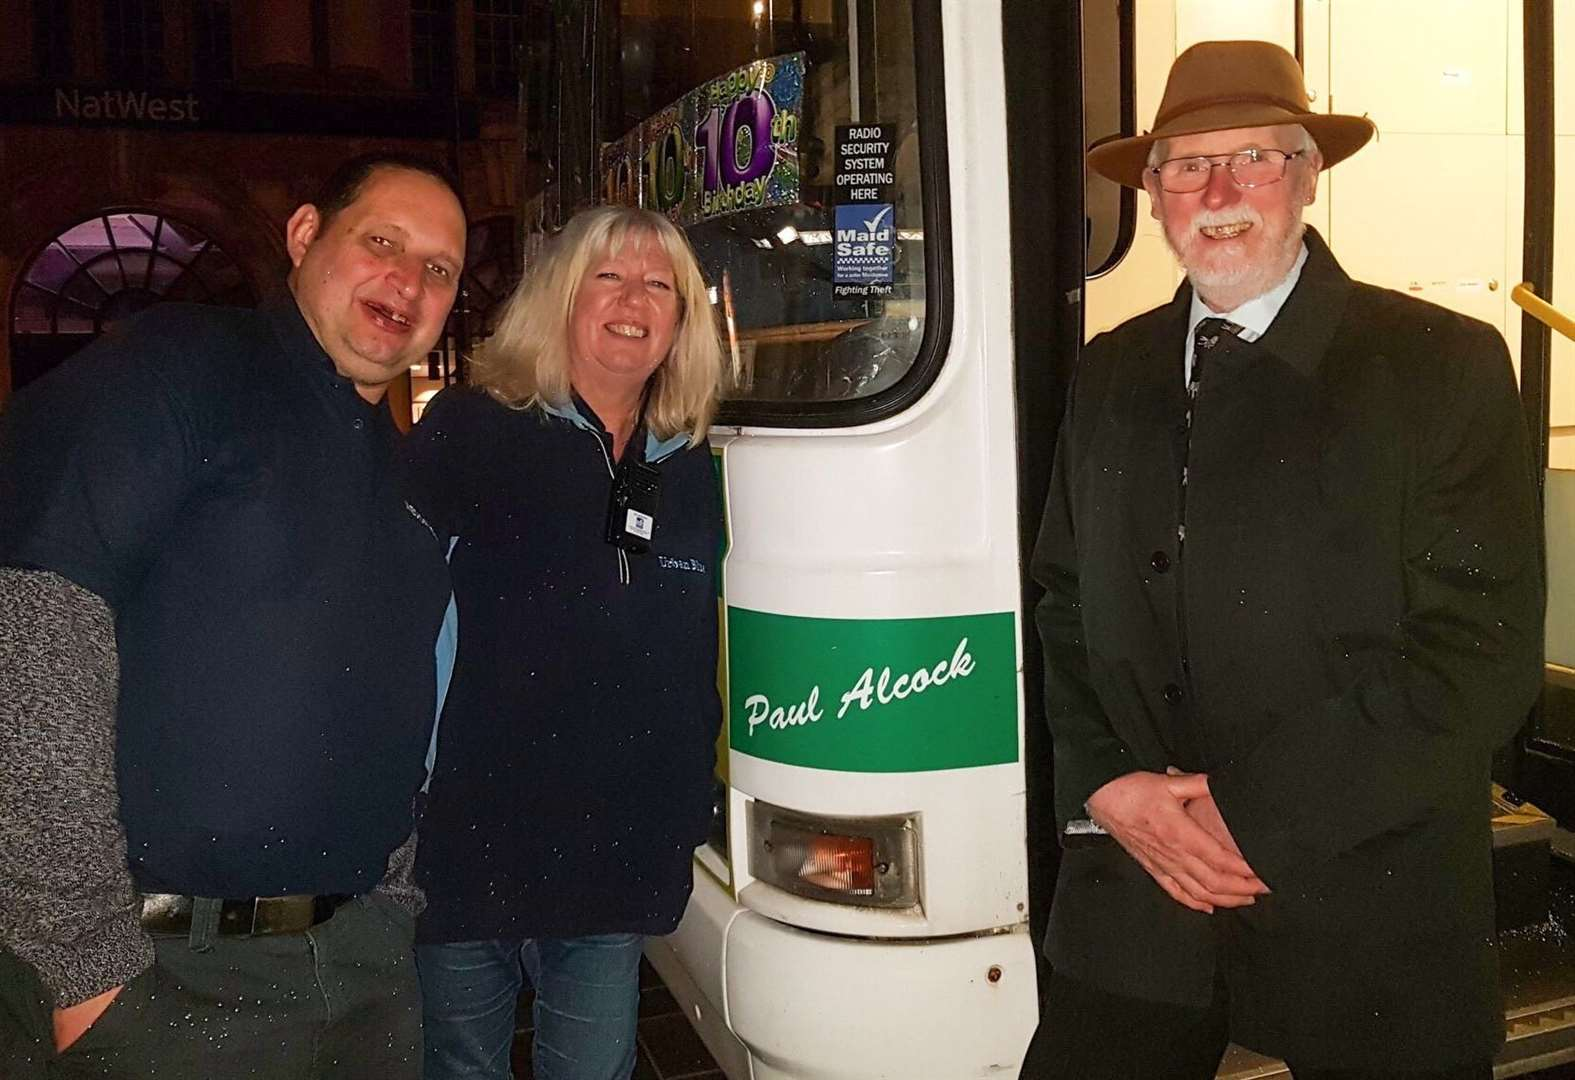 Bus to help revellers turns 10